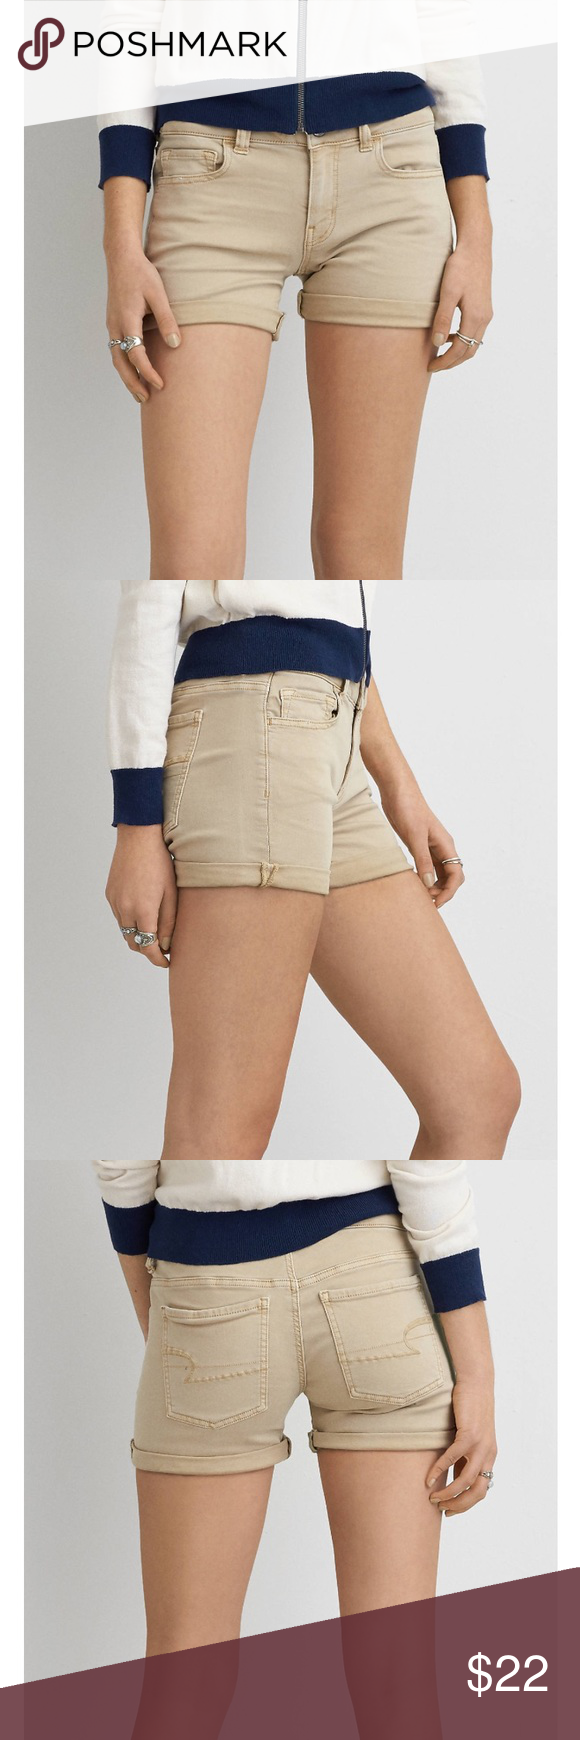 American Eagle Midi Shorts These shorts can be dressed up or dressed down. They are great for the spring season. They are size 6! American Eagle Outfitters Shorts Jean Shorts